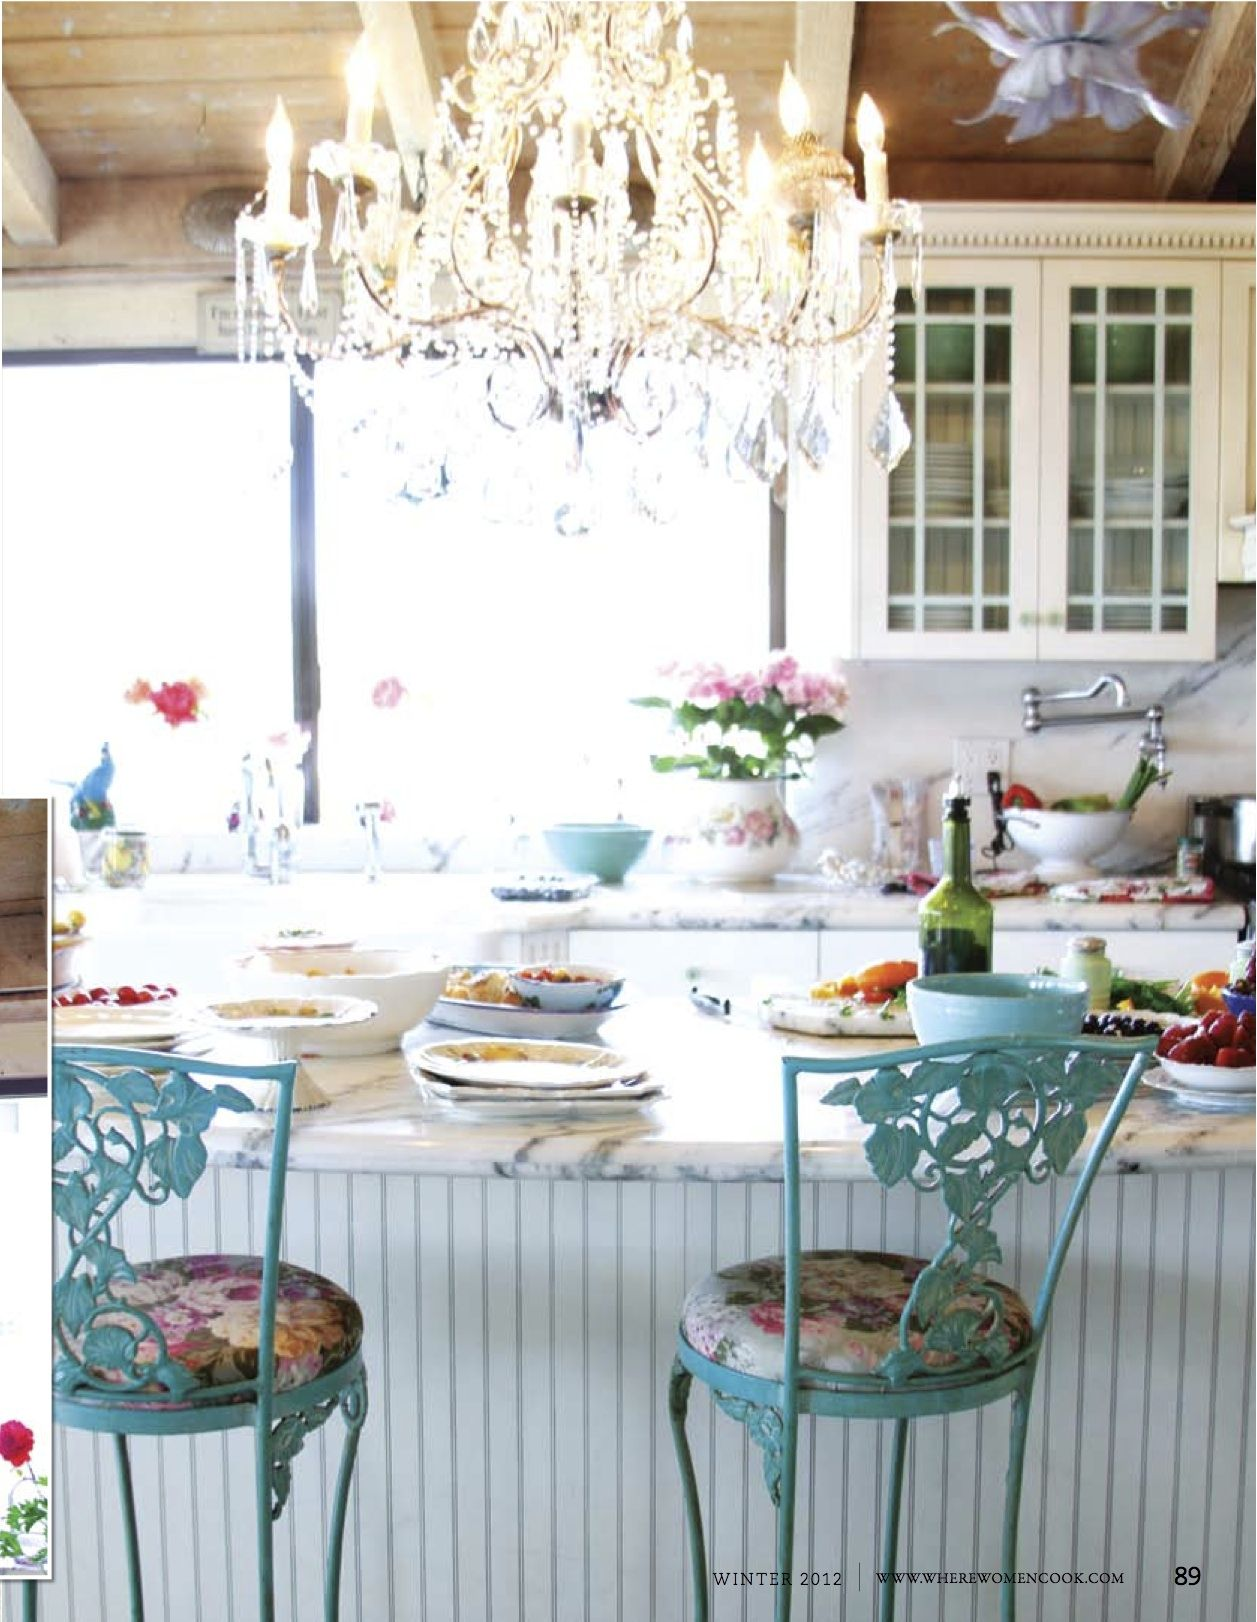 I this gorgeous kitchen (from Lucy Torres of My Paris Flea ... Flea Market Kitchen Ideas on nature kitchen ideas, house kitchen ideas, flea market living room, vintage french kitchen ideas, vinyl kitchen ideas, plants kitchen ideas, flea market garden, flea market decorating, flea market food, flea market design, travel kitchen ideas, flea market style, school kitchen ideas, photography kitchen ideas, flea market home, apartments kitchen ideas, fixer upper kitchen ideas, furniture kitchen ideas, flea market pets, craft kitchen ideas,